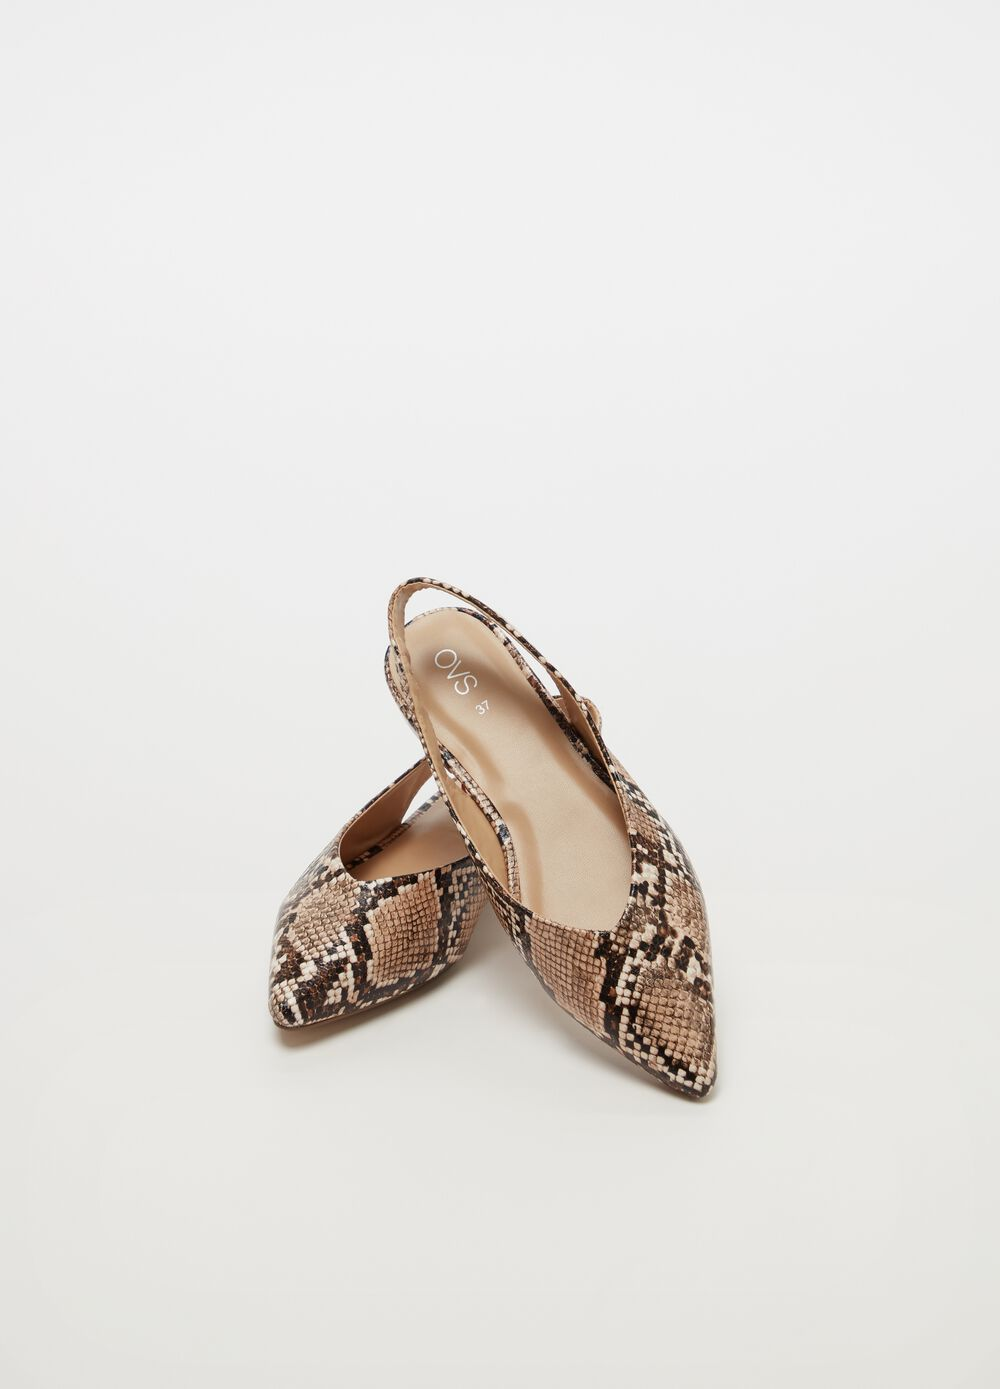 Slingback sandals with snakeskin pattern